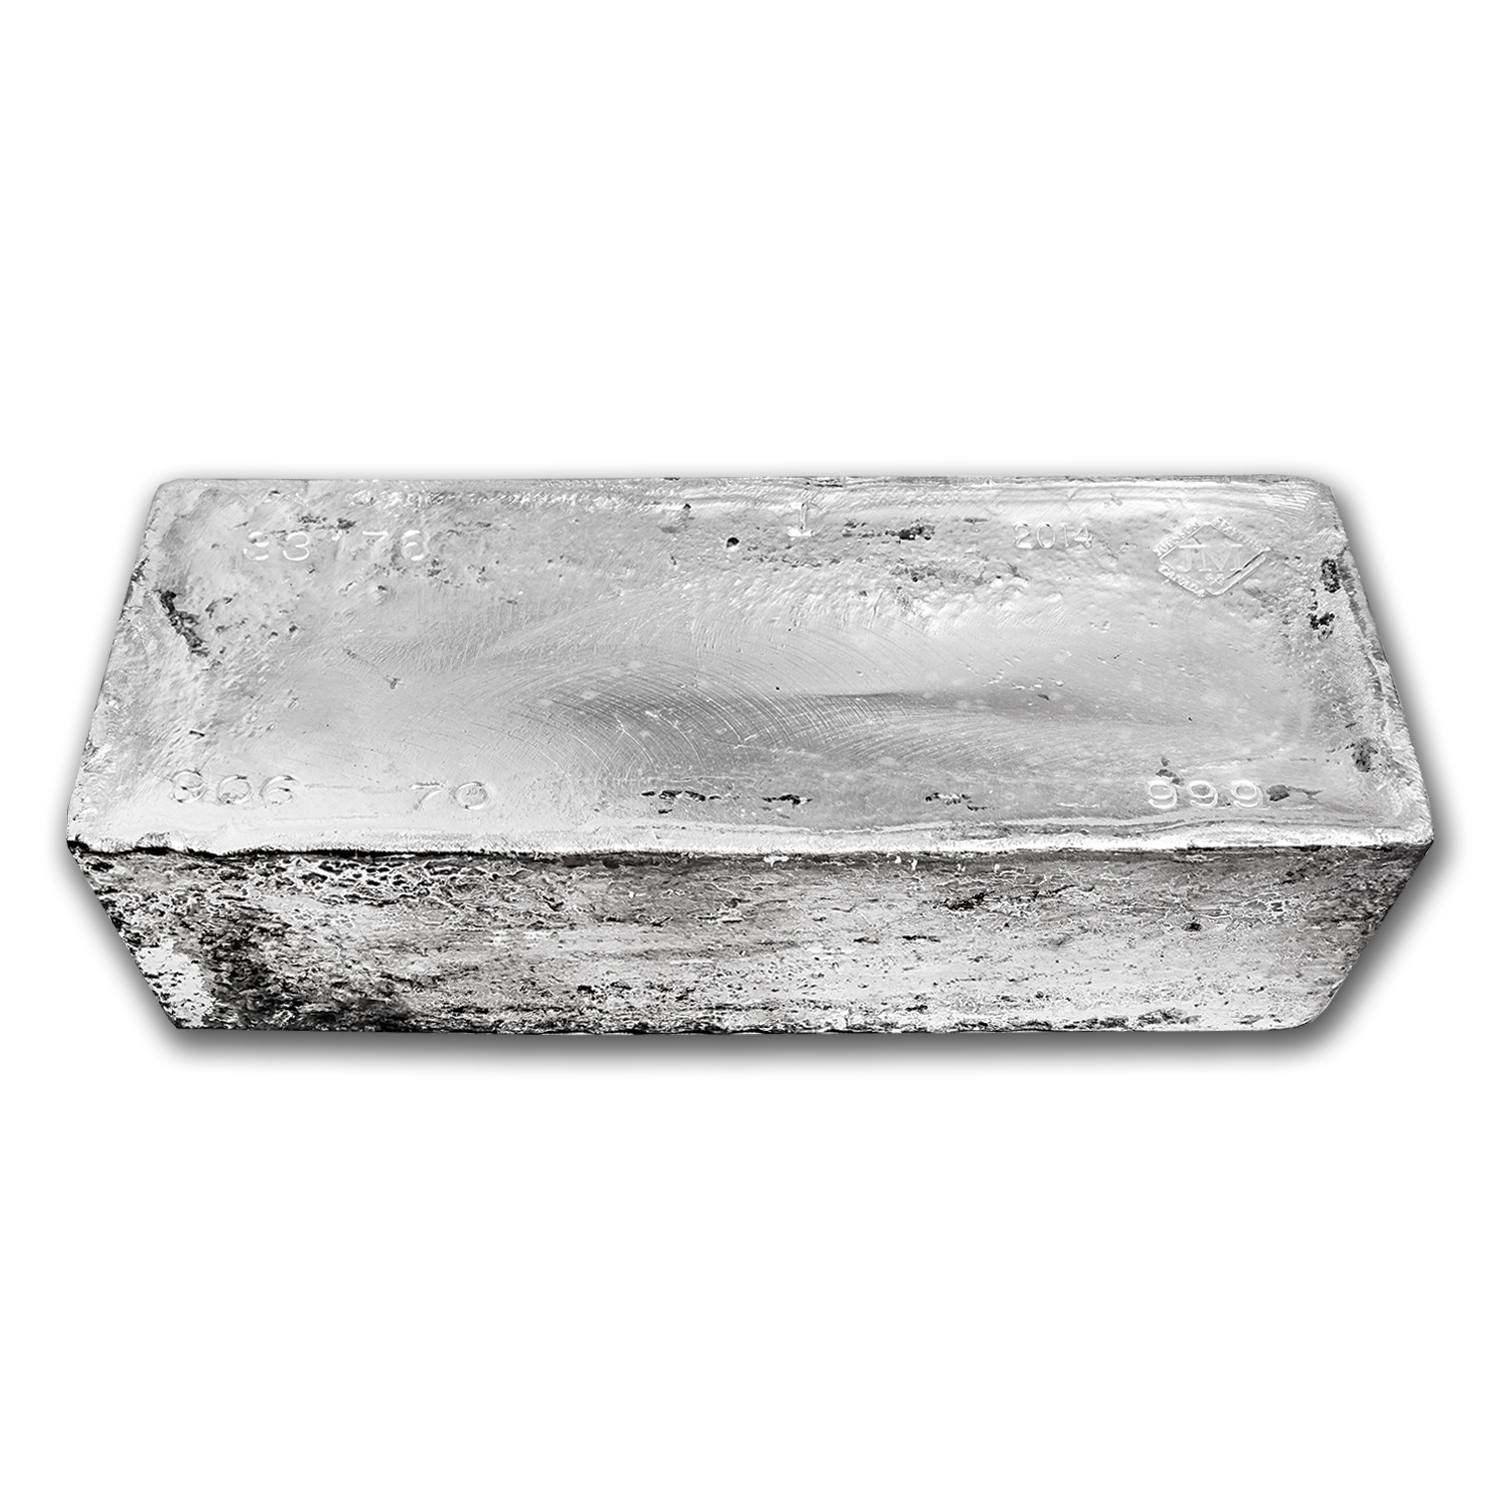 949.70 oz Silver Bar - Johnson Matthey